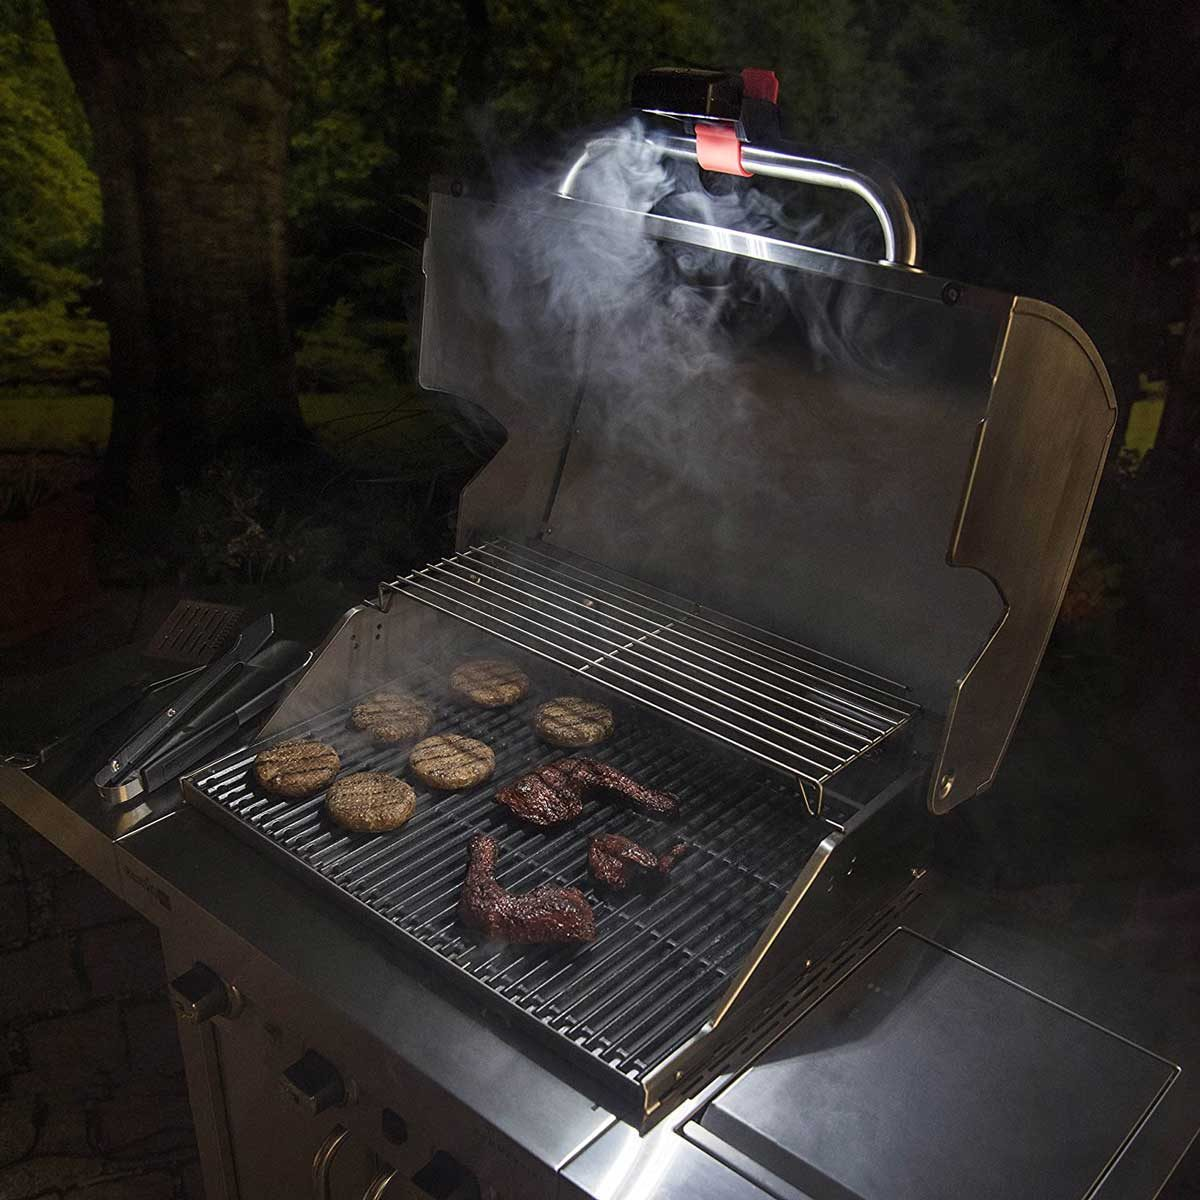 Grill with a light